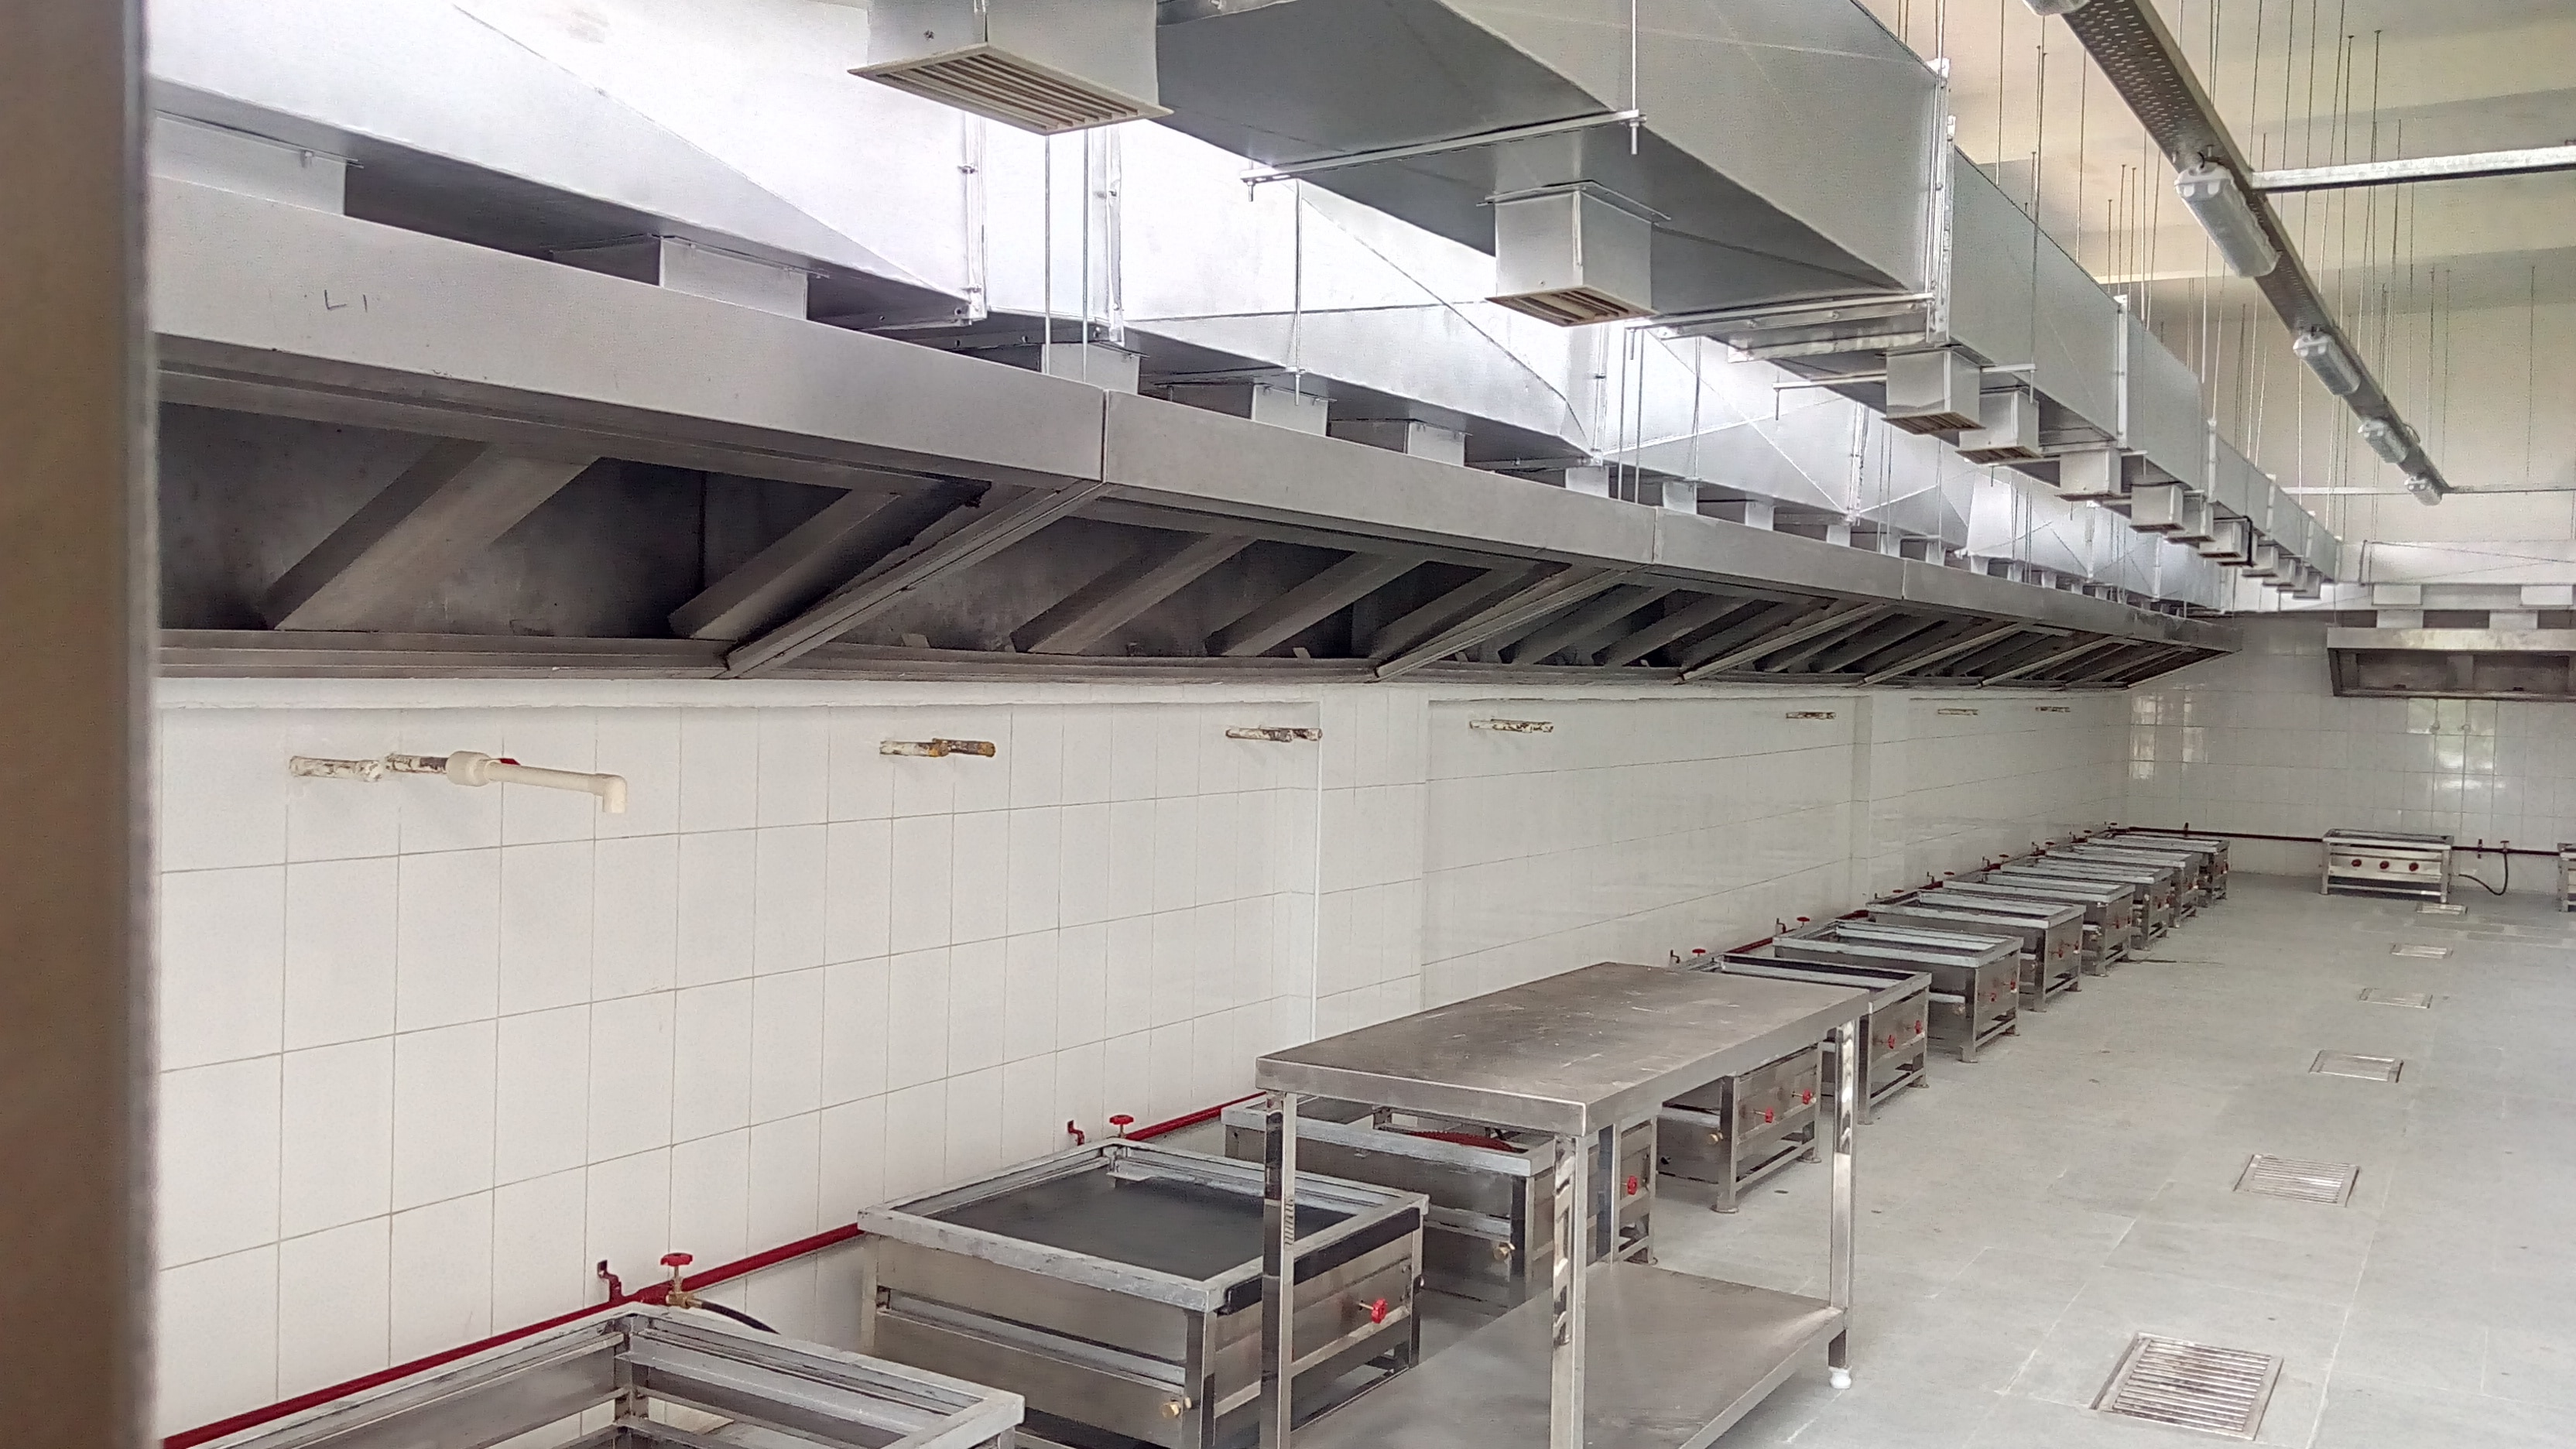 Exhaust & Fresh Air System Done At Curry 'N' Crunch Central Kitchen